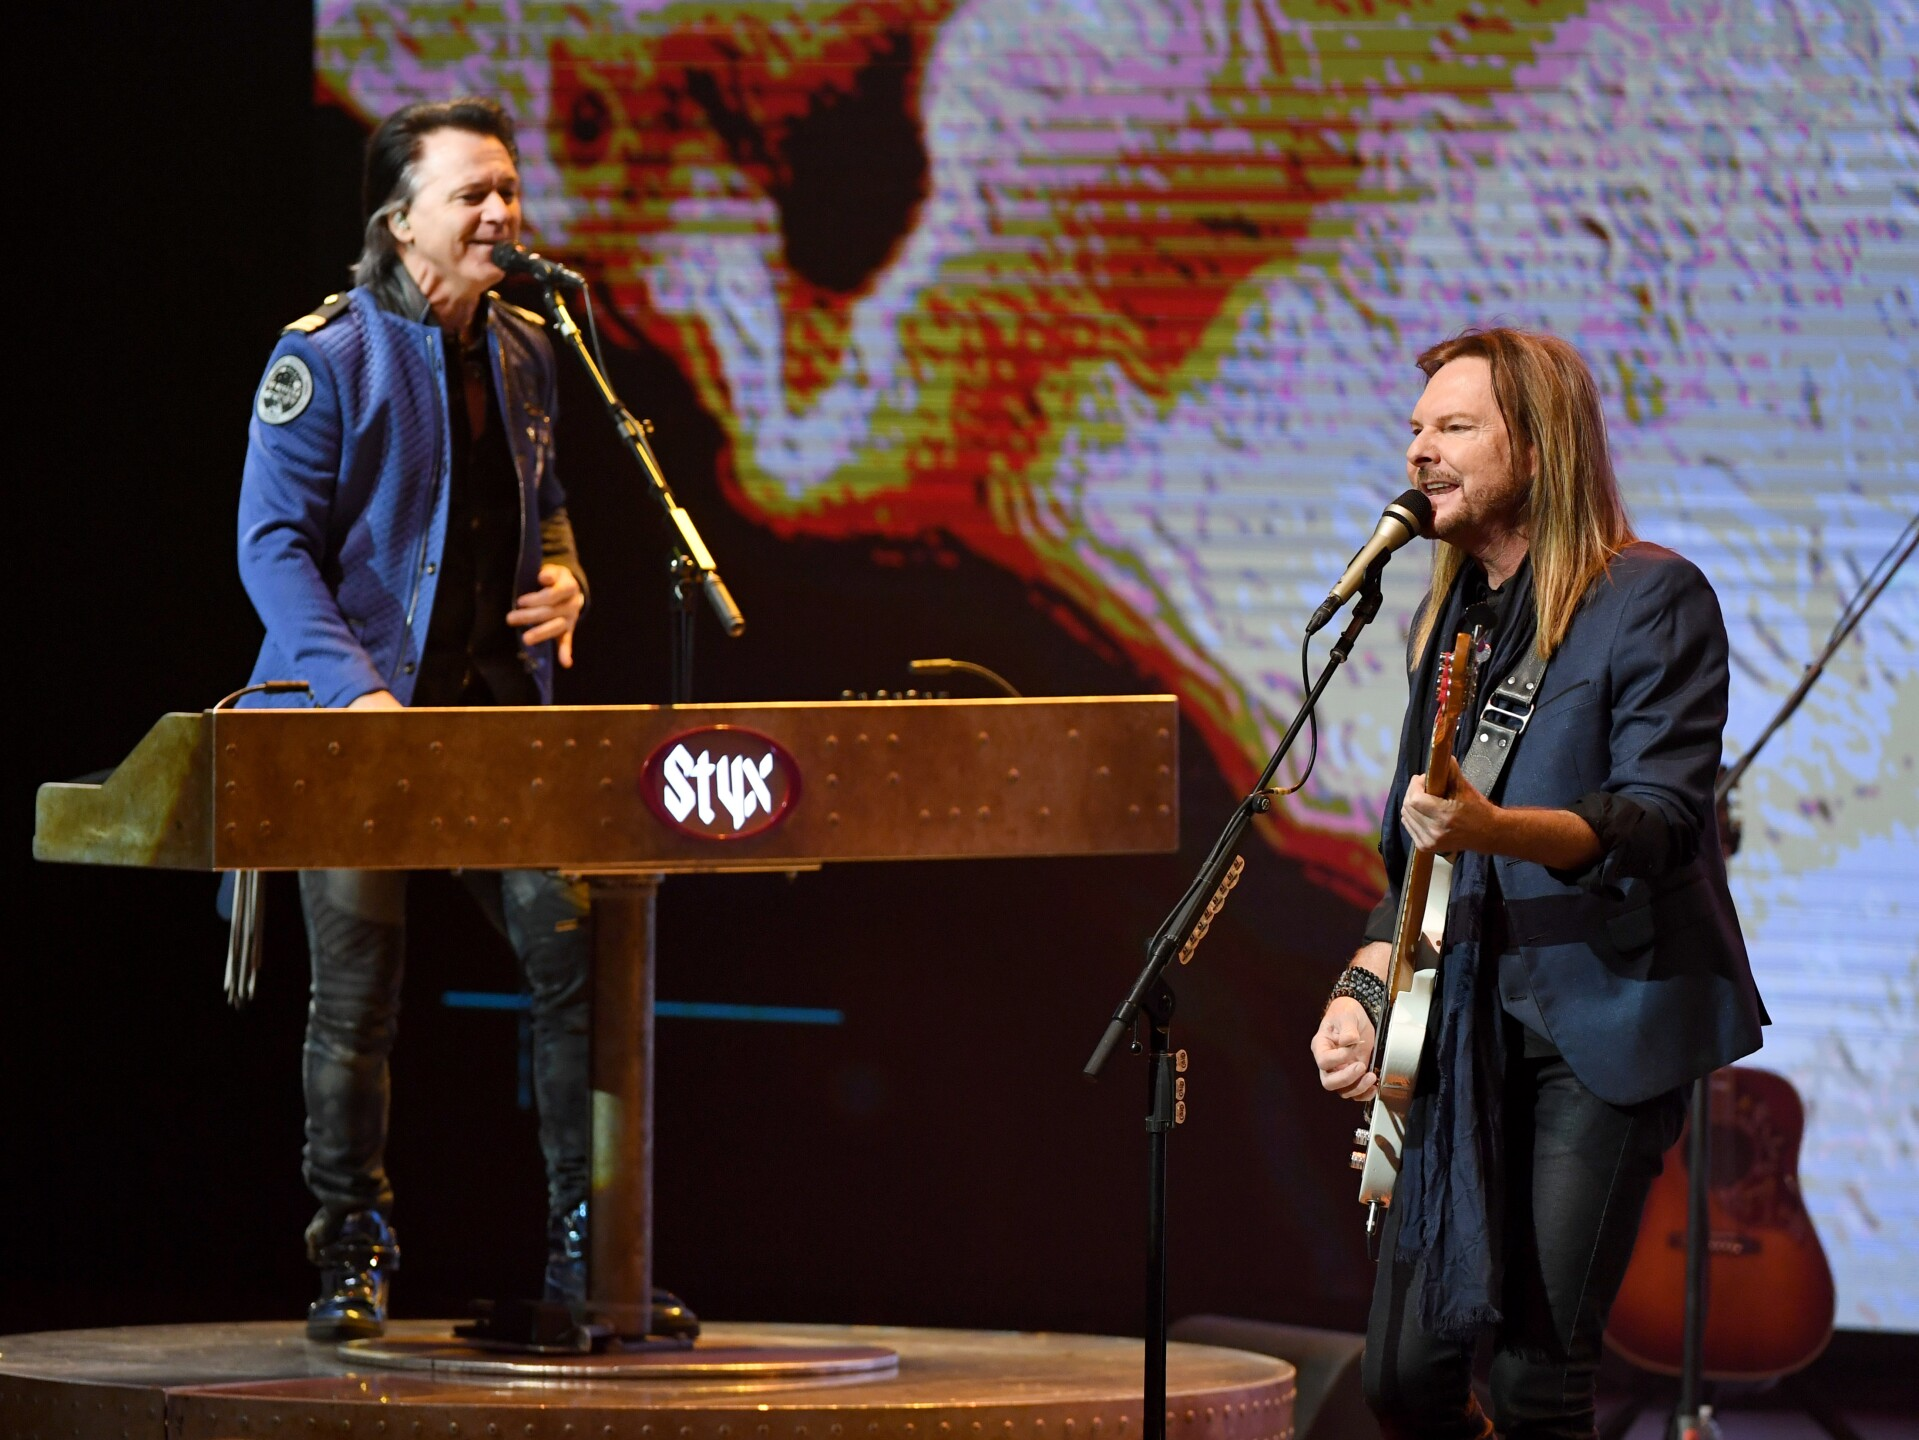 Styx to perform at Summerfest 2019.